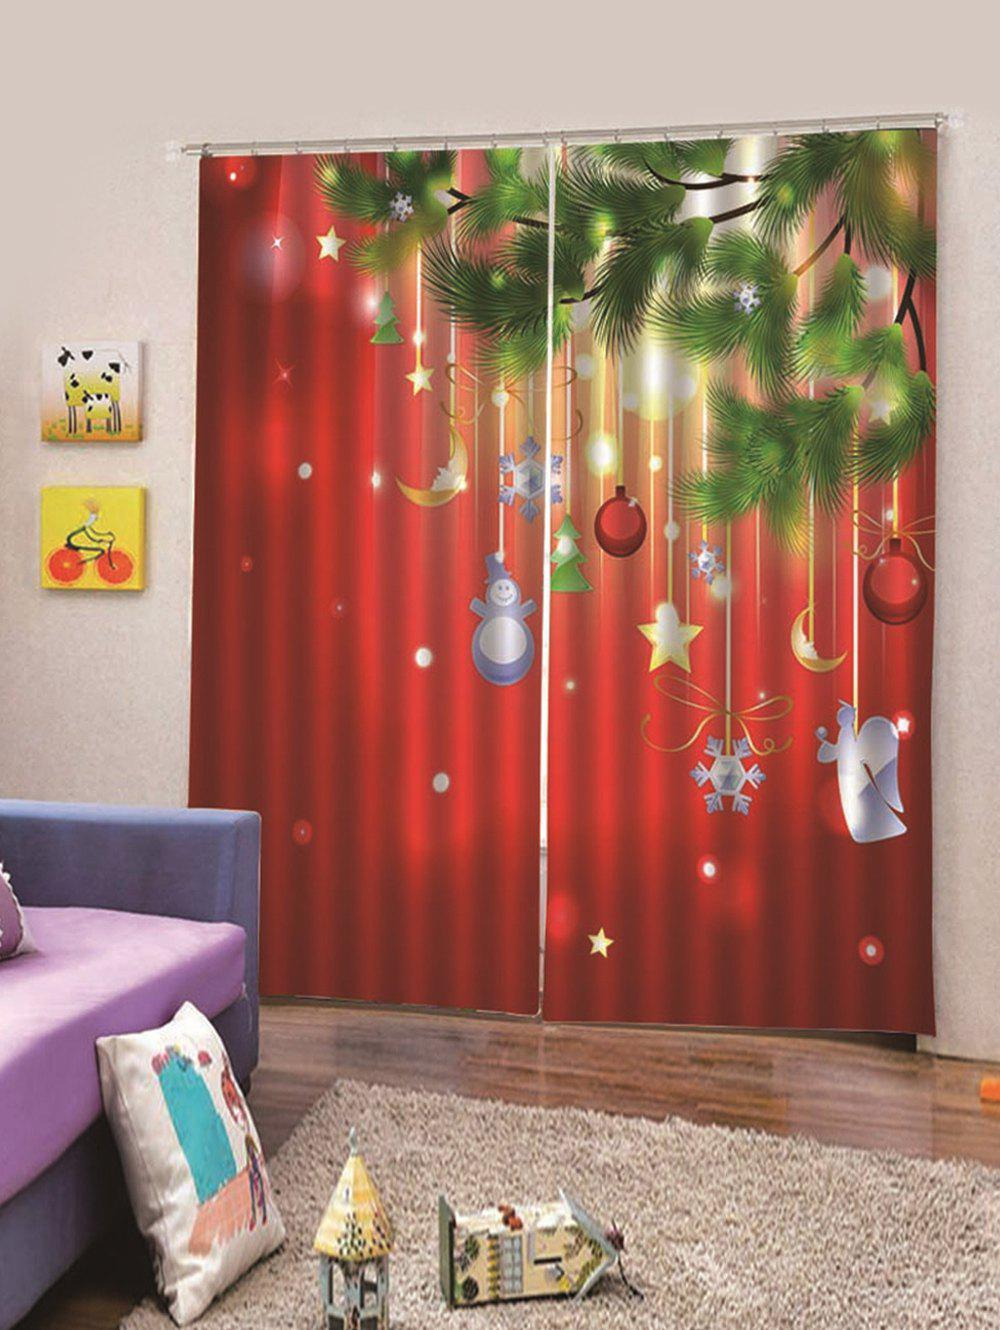 Online 2Pcs Christmas Hanging Decorations Printed Window Curtains